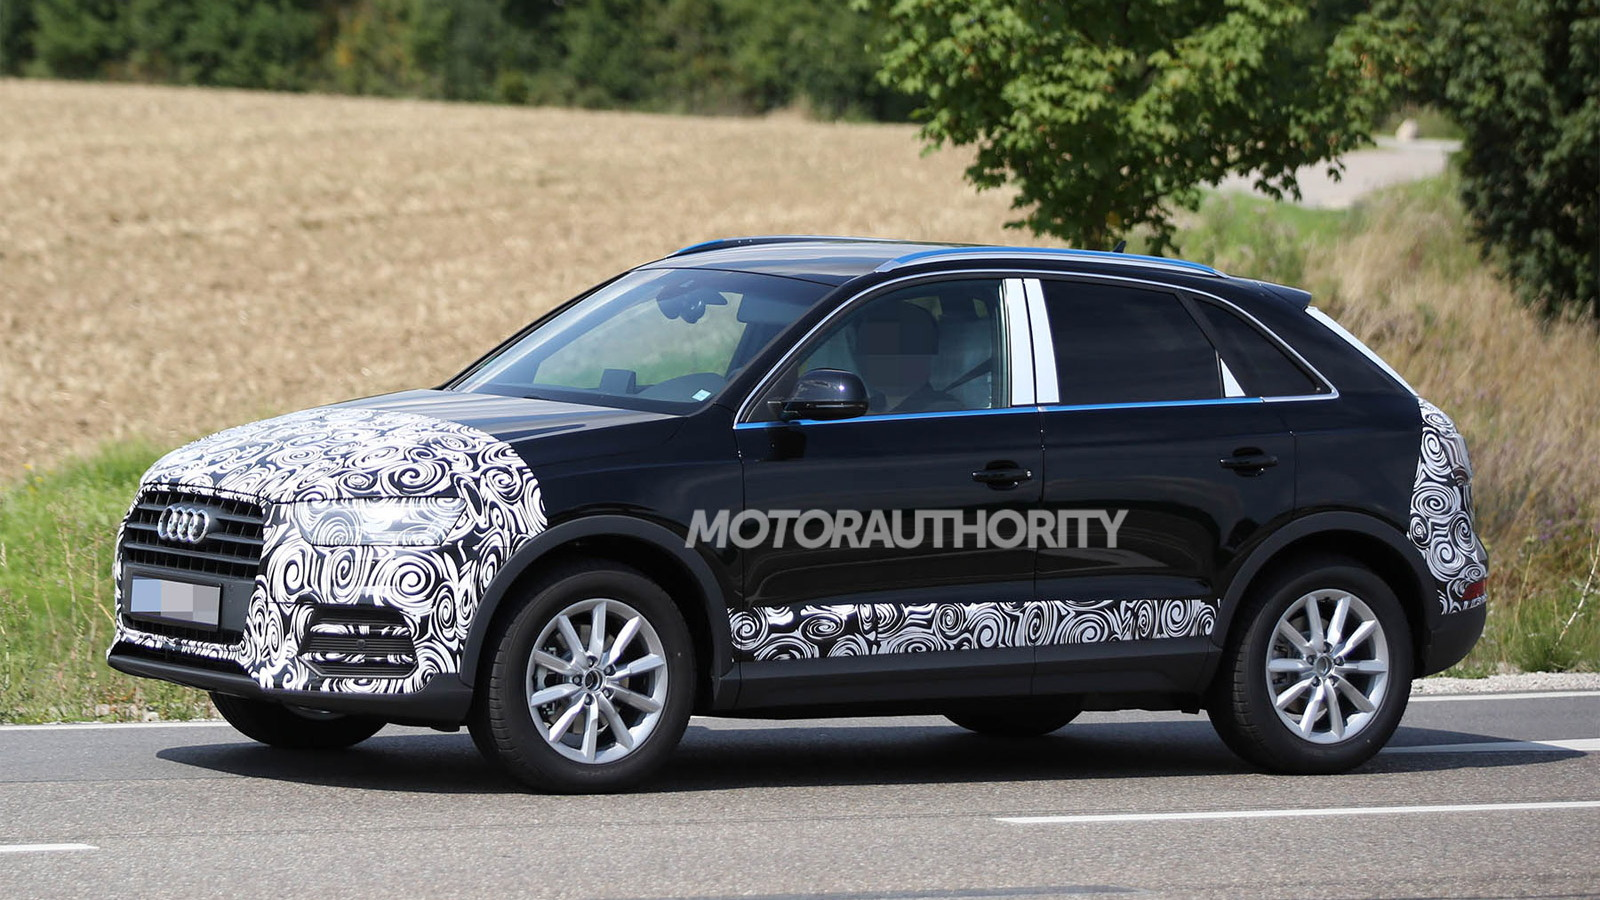 2016 Audi Q3 facelift spy shots